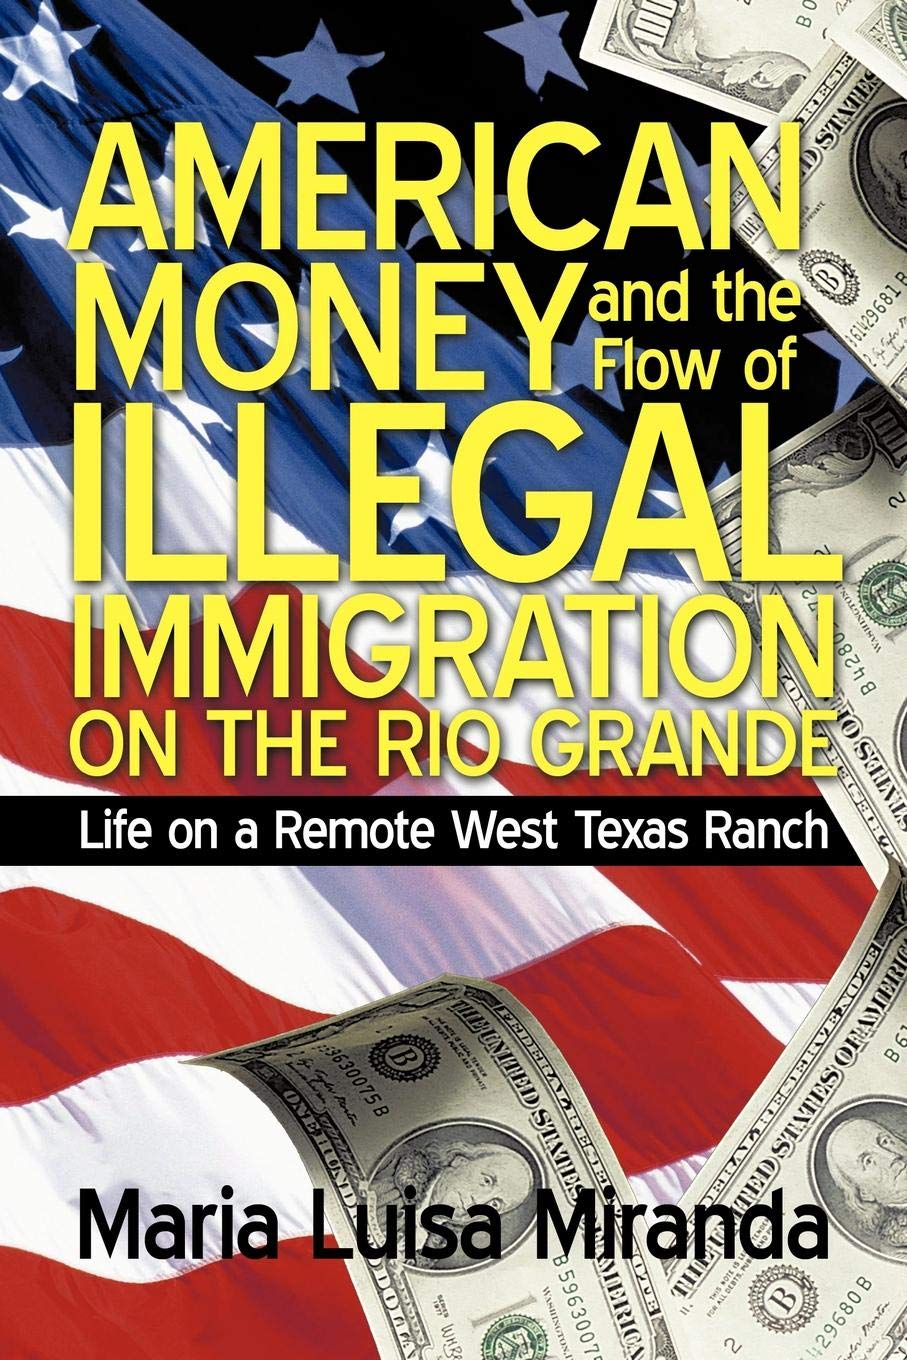 Read Online American Money and the Flow of Illegal Immigration on the Rio Grande: Life on a Remote West Texas Ranch pdf epub